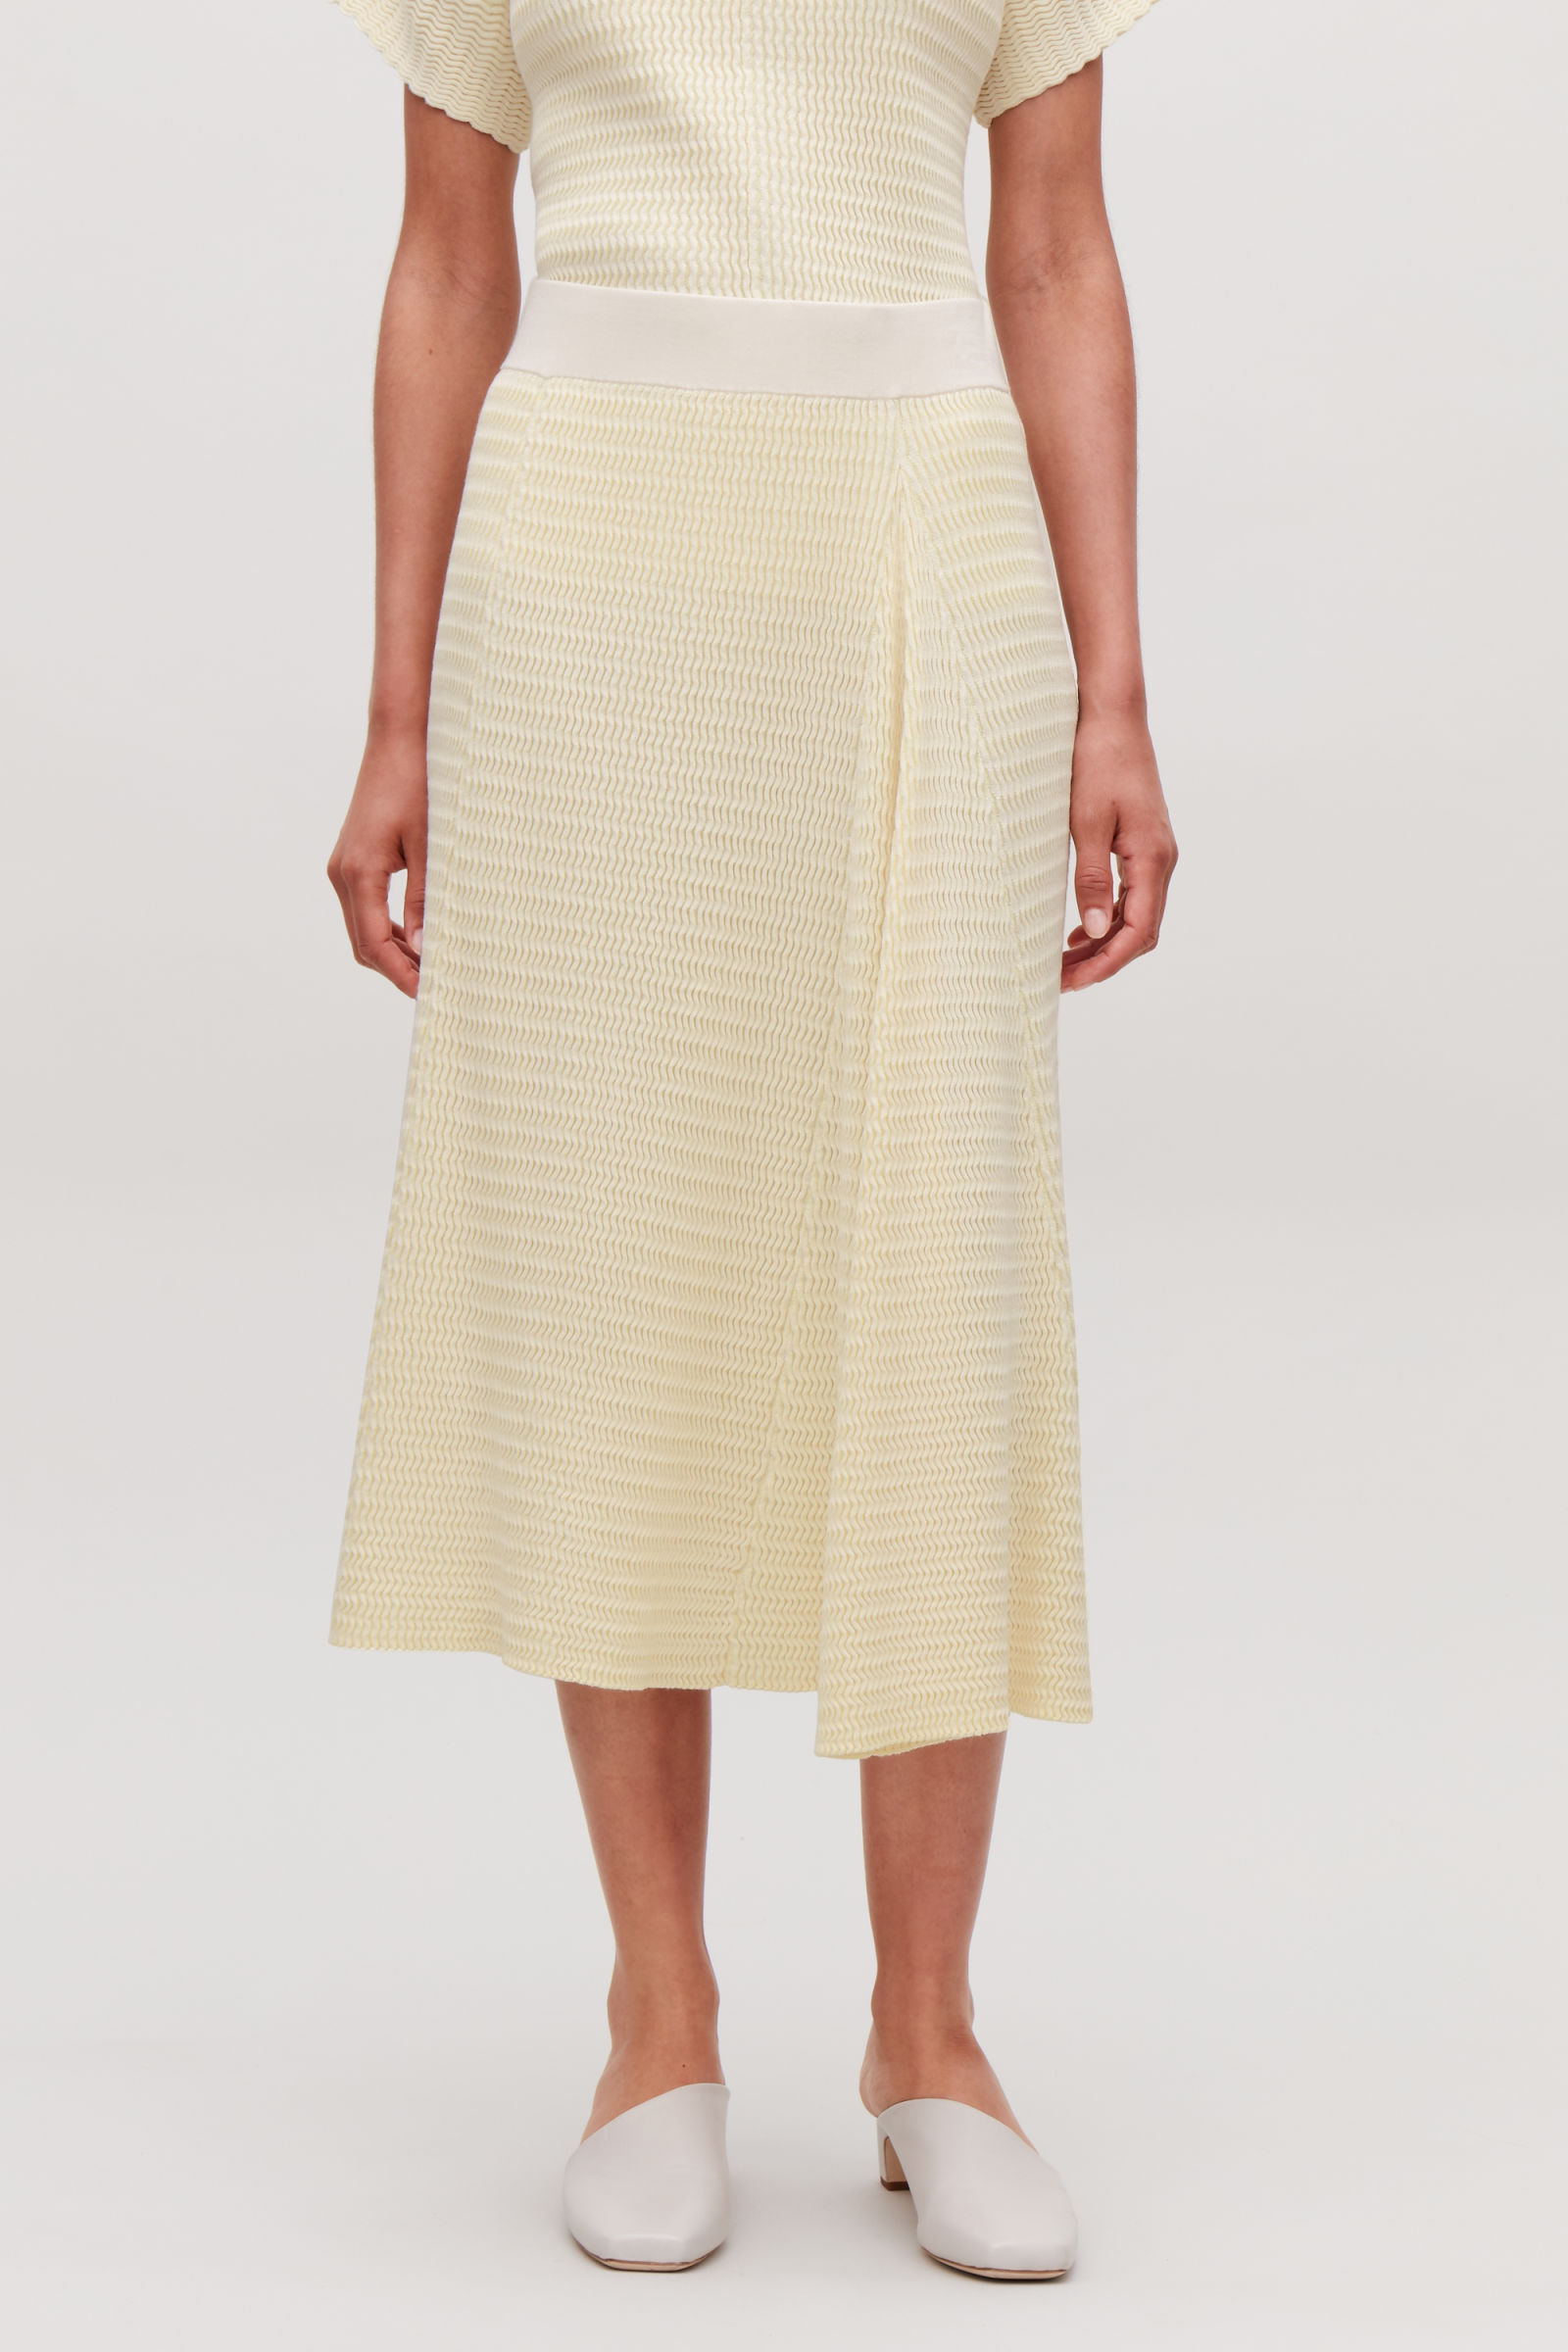 Cos, Wave Stitch Skirt £69